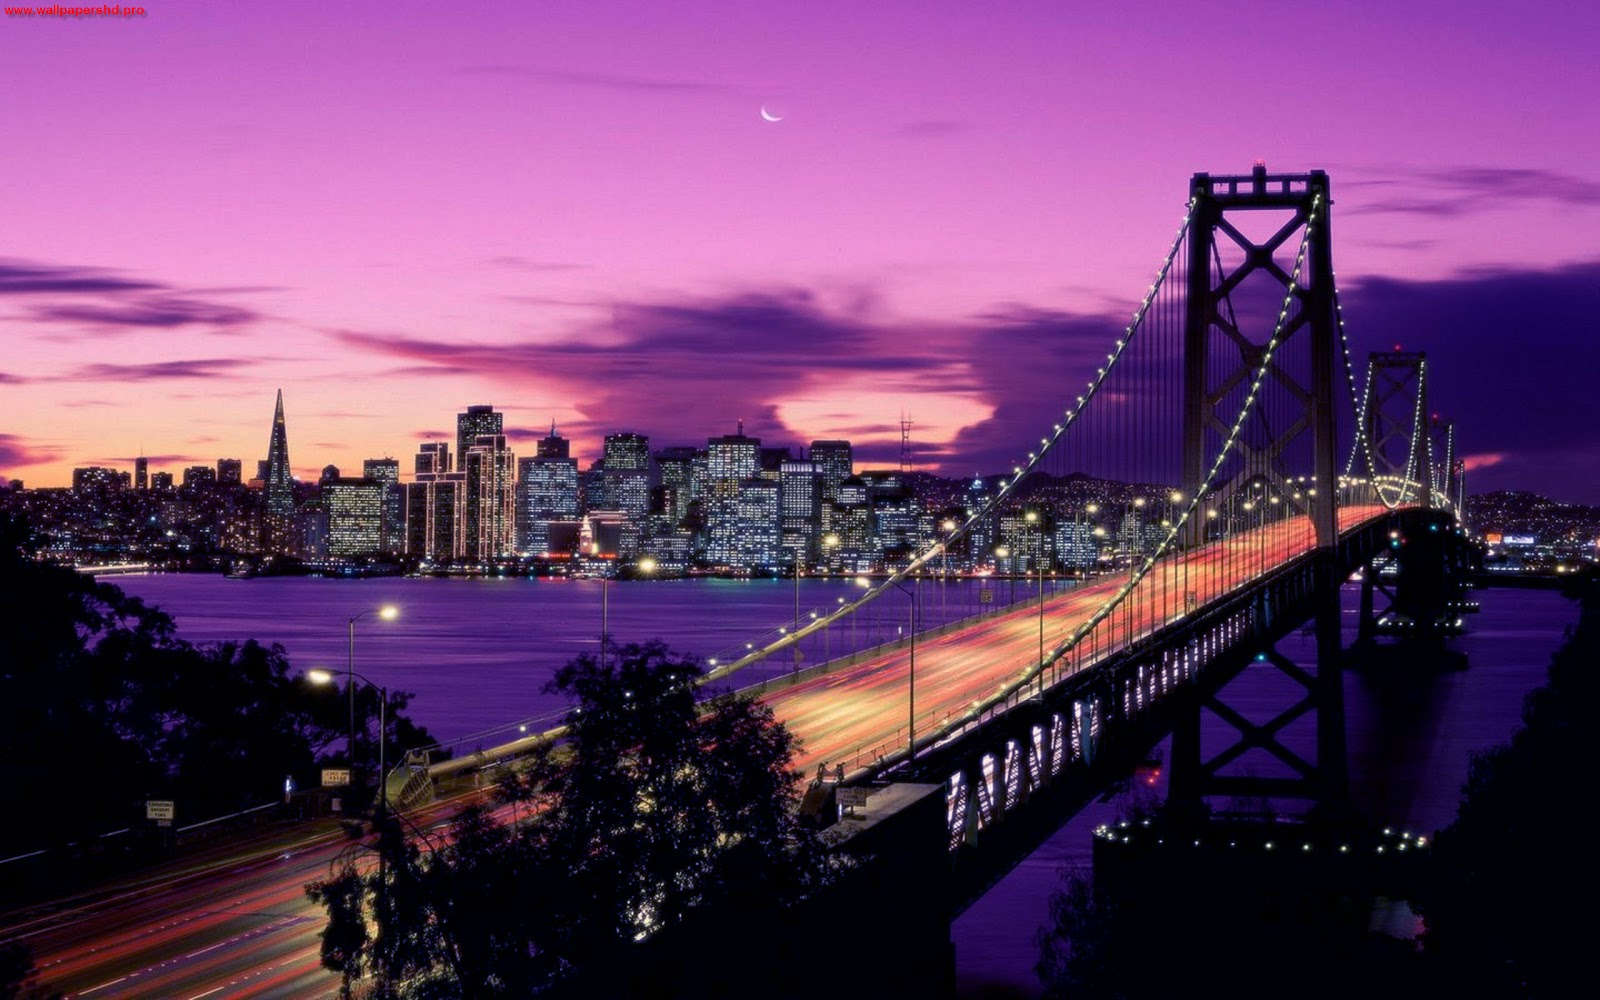 wallpaper wallpaper city guides san francisco